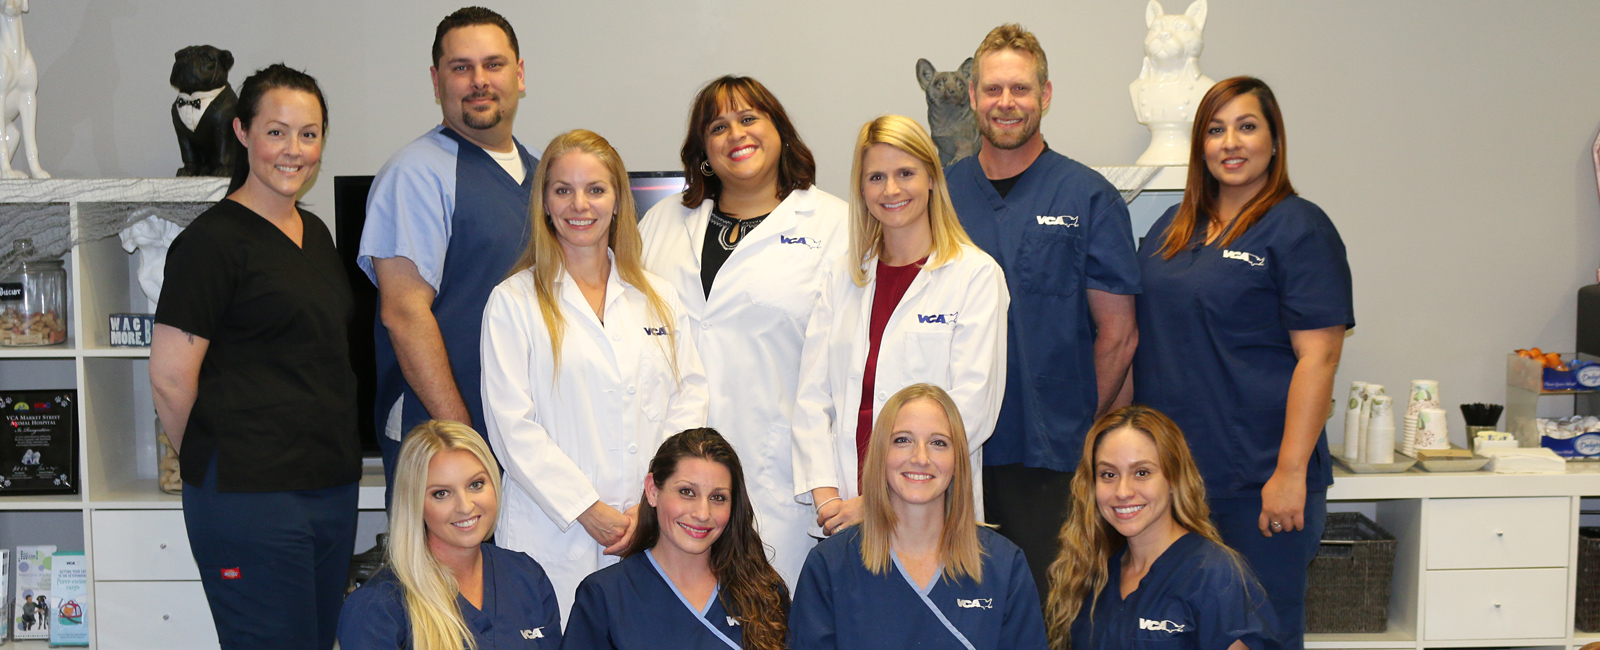 Team Picture of VCA Market Street Animal Hospital